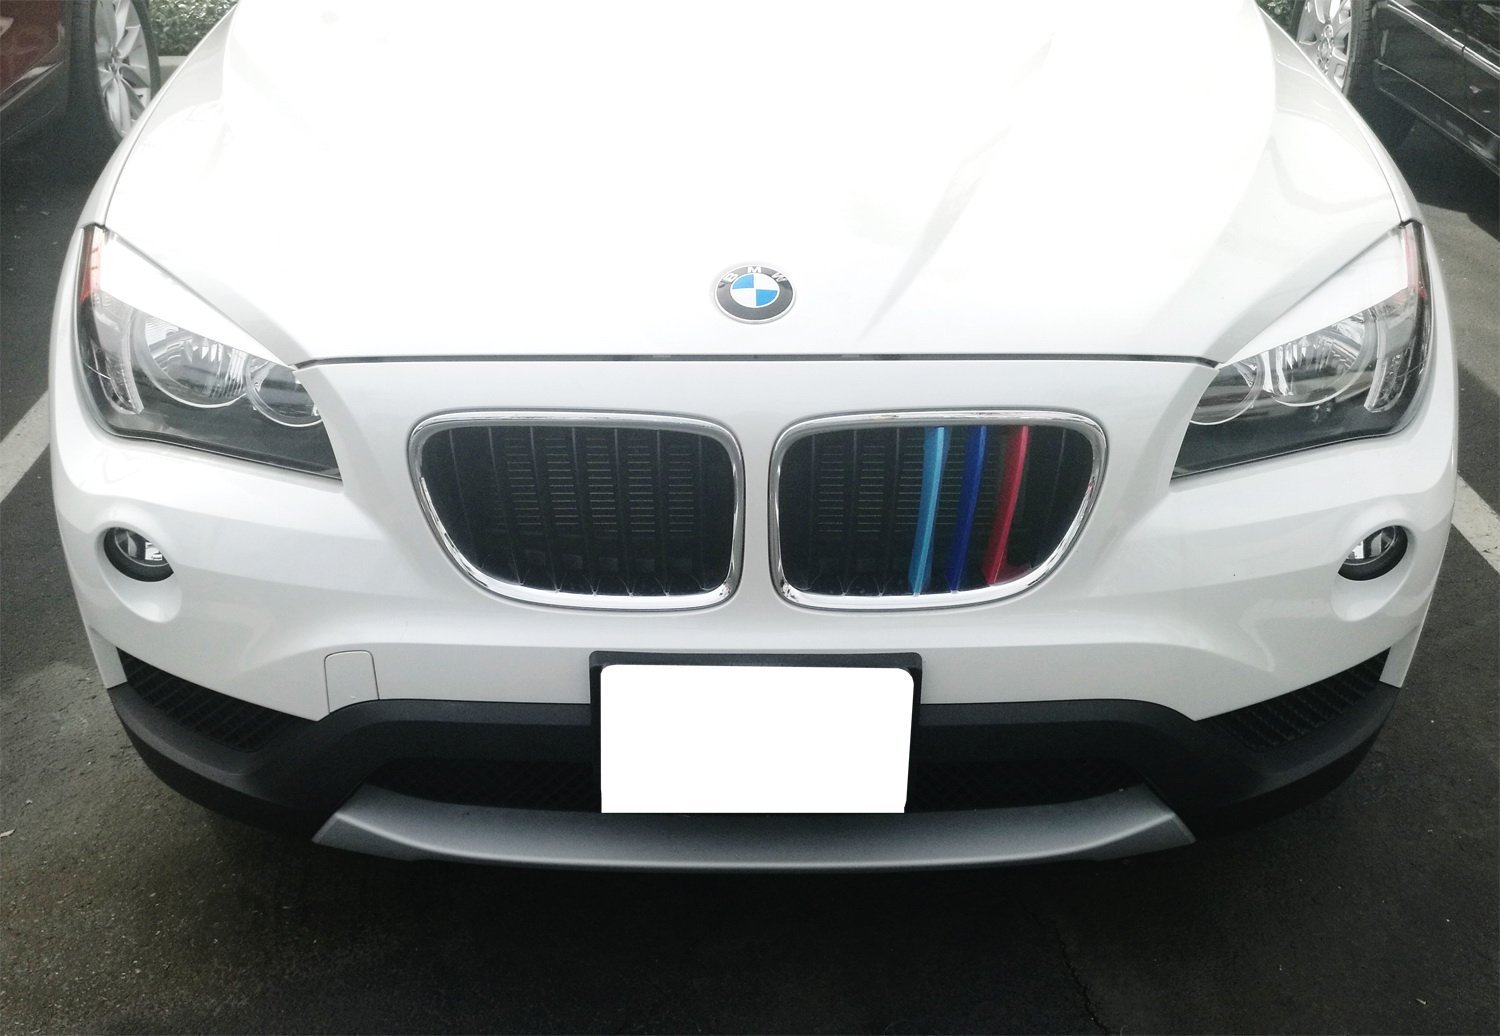 09-15 E84 X1 7-Beam grile Insert lanyun M Color X1 E84 Series Grille Insert Trims Stripes Decorate for 2009-2015 BMW X1 E84 Grill Stripes